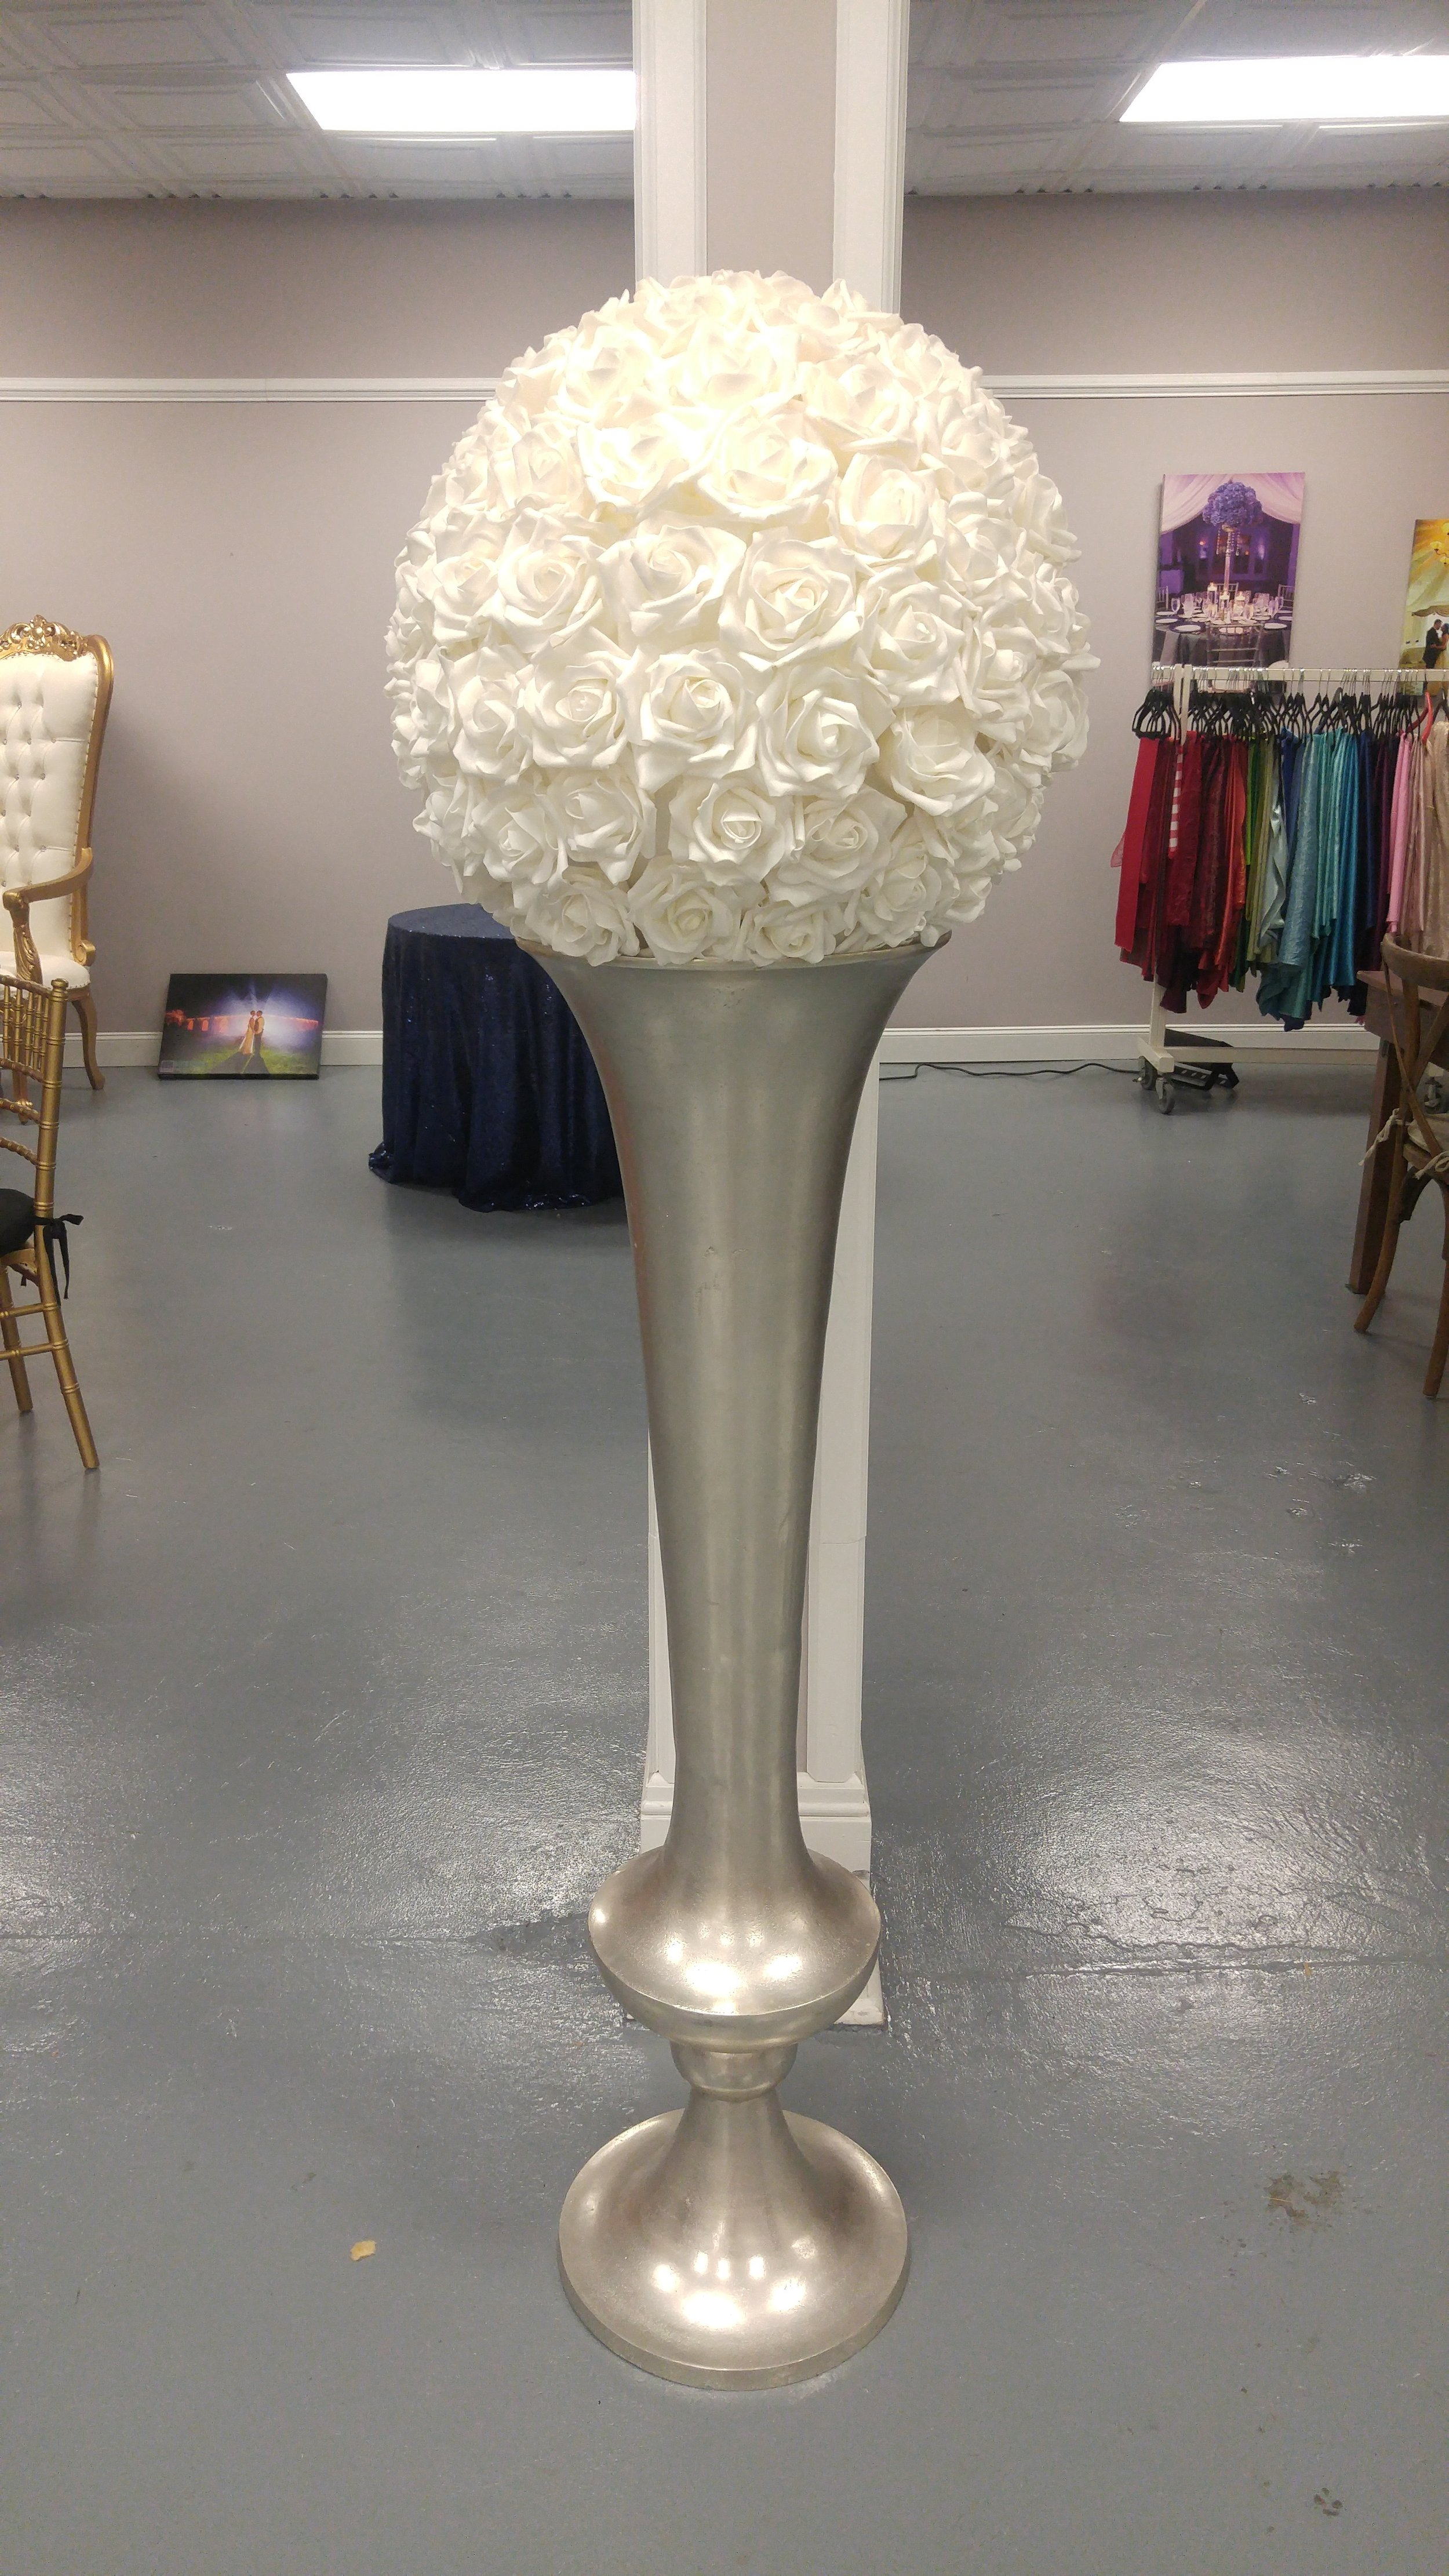 Extra-Large Silver Urn